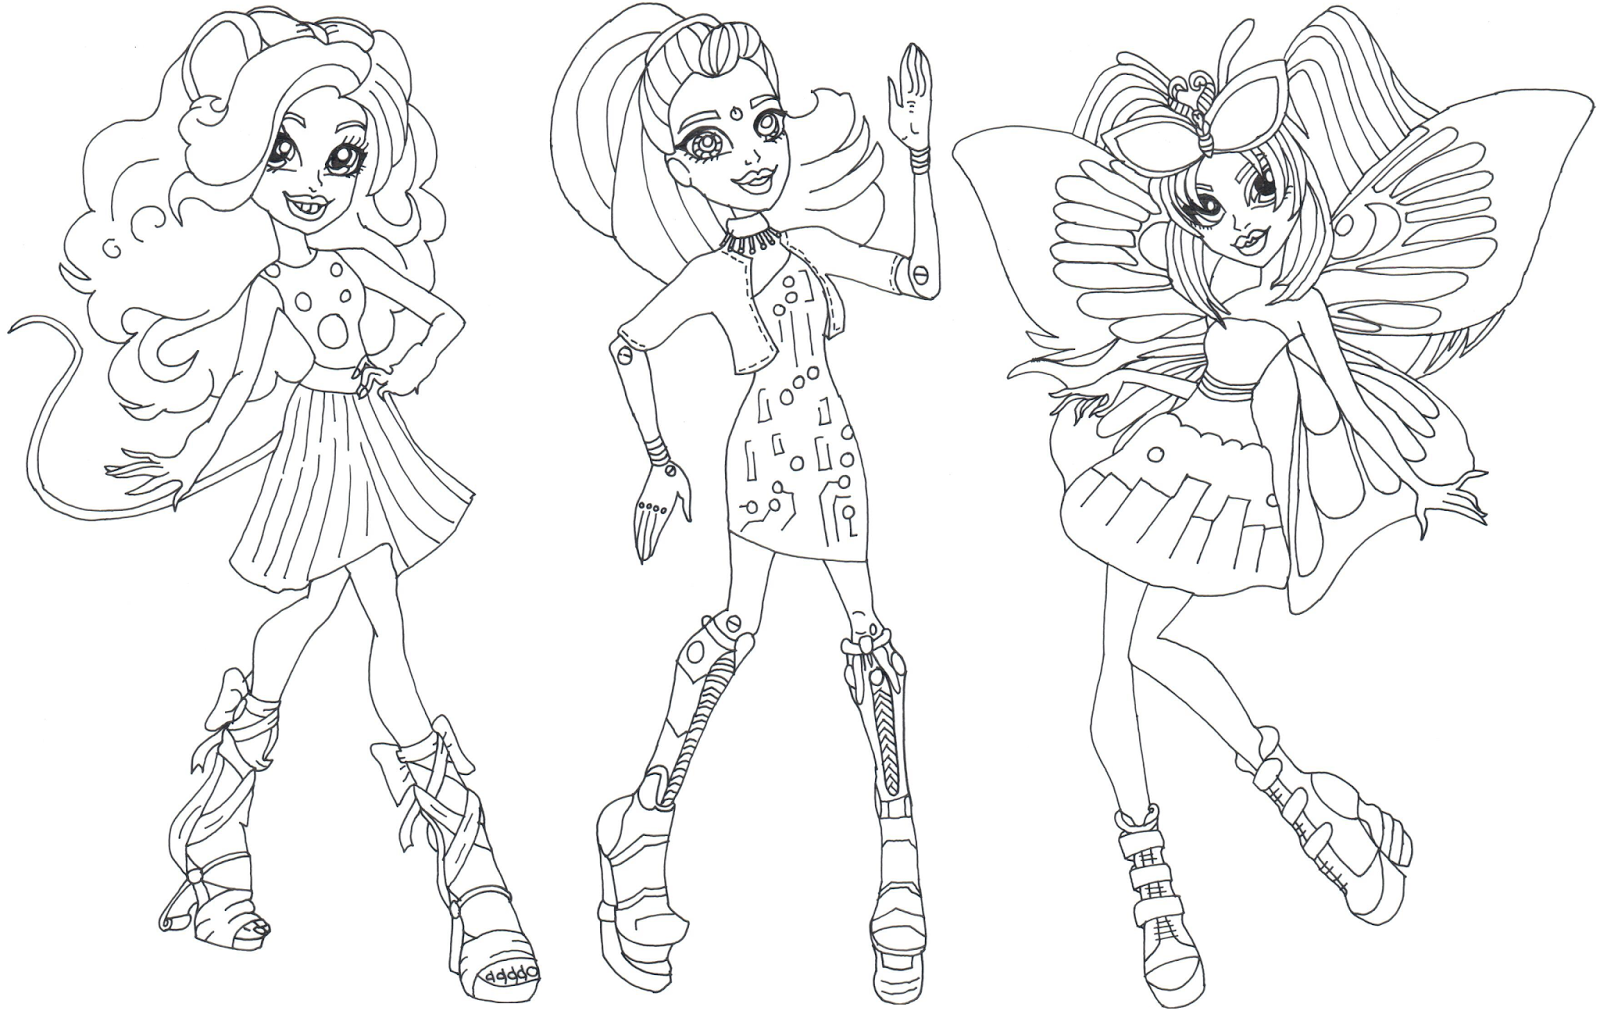 gala ghoulfriends boo york monster high coloring page